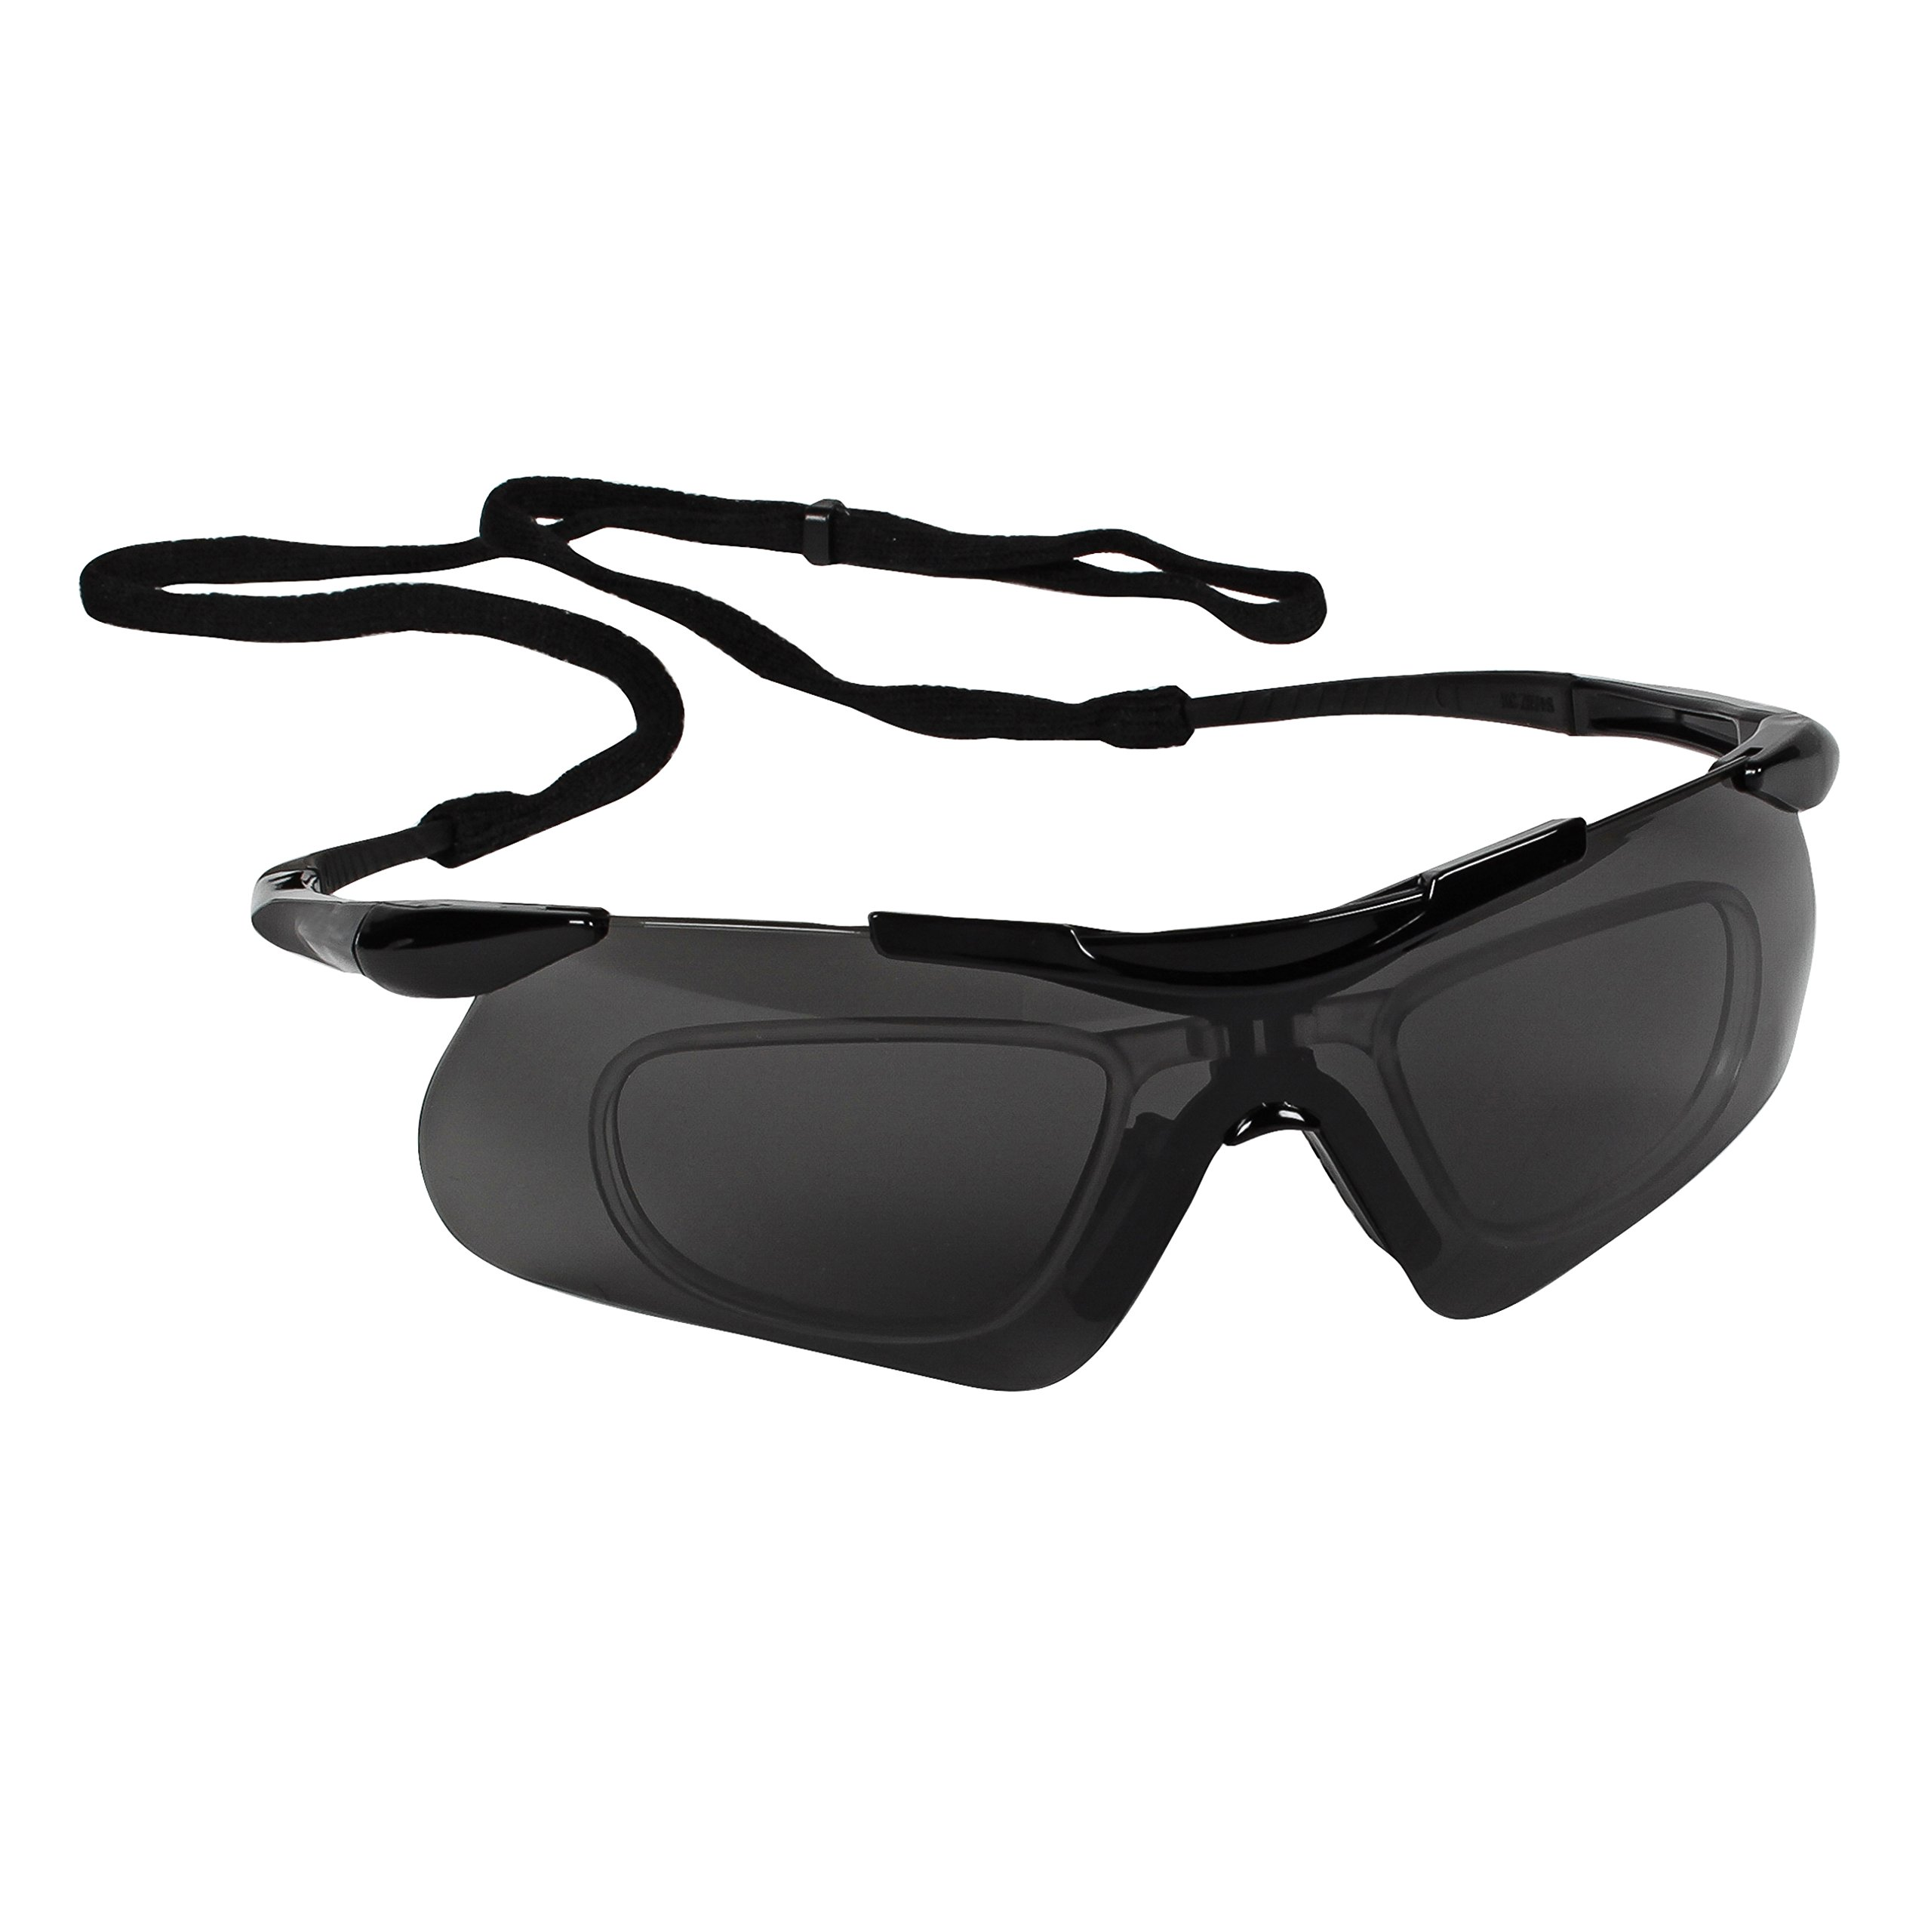 Jackson Safety Nemesis Safety Glasses with Rx Inserts (38505), OTG Protective Glasses, Smoke Anti-Fog Lenses, Black Frame, 12 Pairs / Case